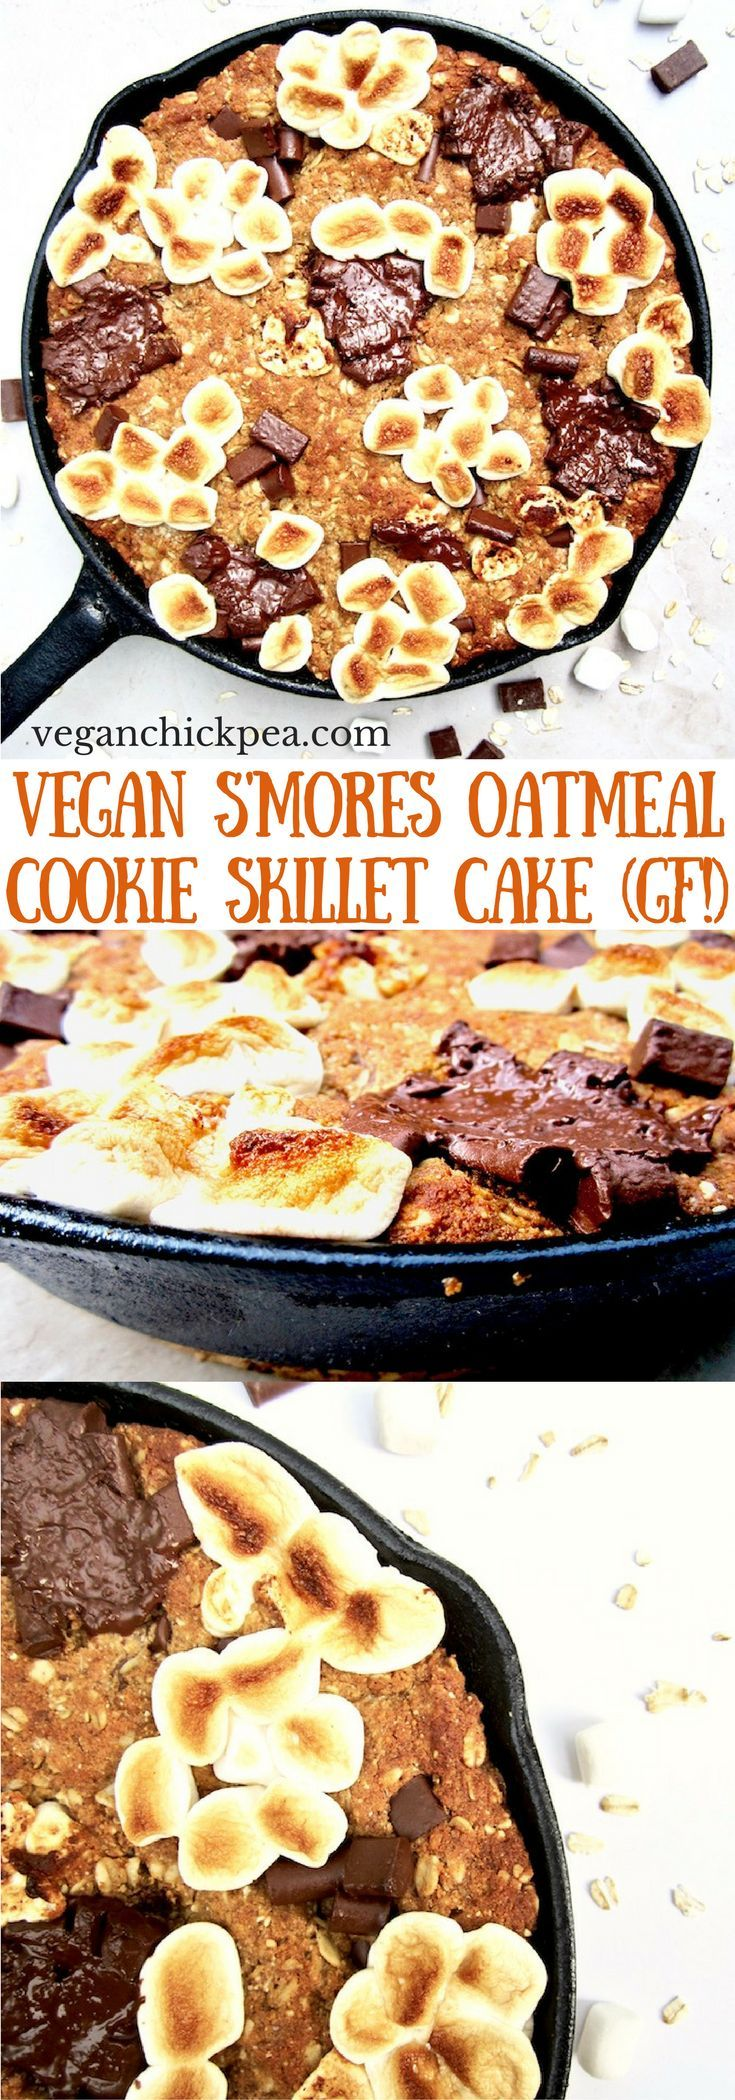 S'mores Oatmeal Cookie Skillet Cake recipe - This vegan and gluten free thick cookie cake is a hybrid between oatmeal bars and cookies, with chocolate chunks, marshmallows, oats, coconut flour and flavorful hints of cinnamon, nutmeg and ginger. A new spin